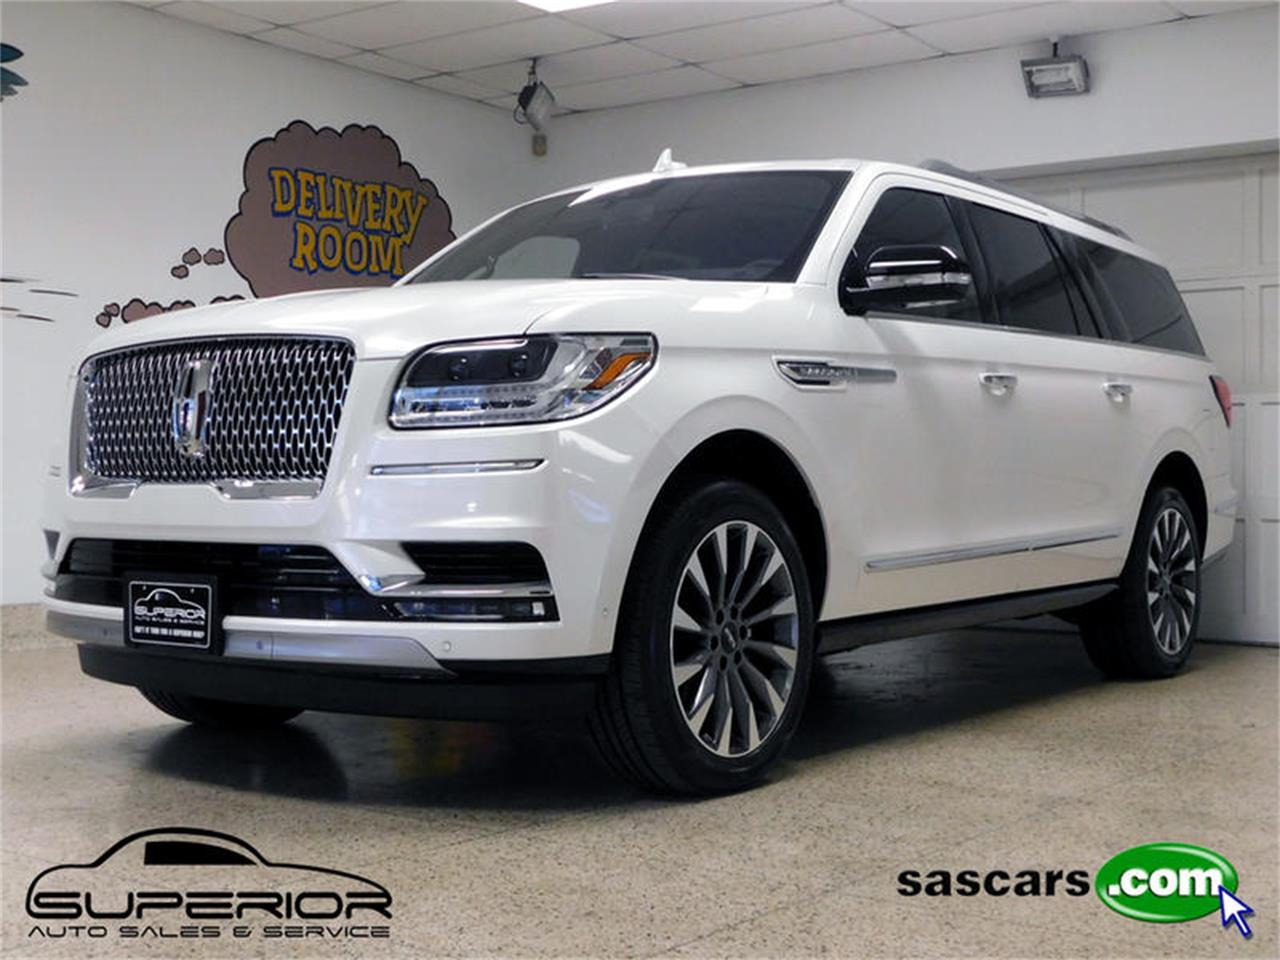 2018 Lincoln Navigator For Sale Classiccars Com Cc 1192550